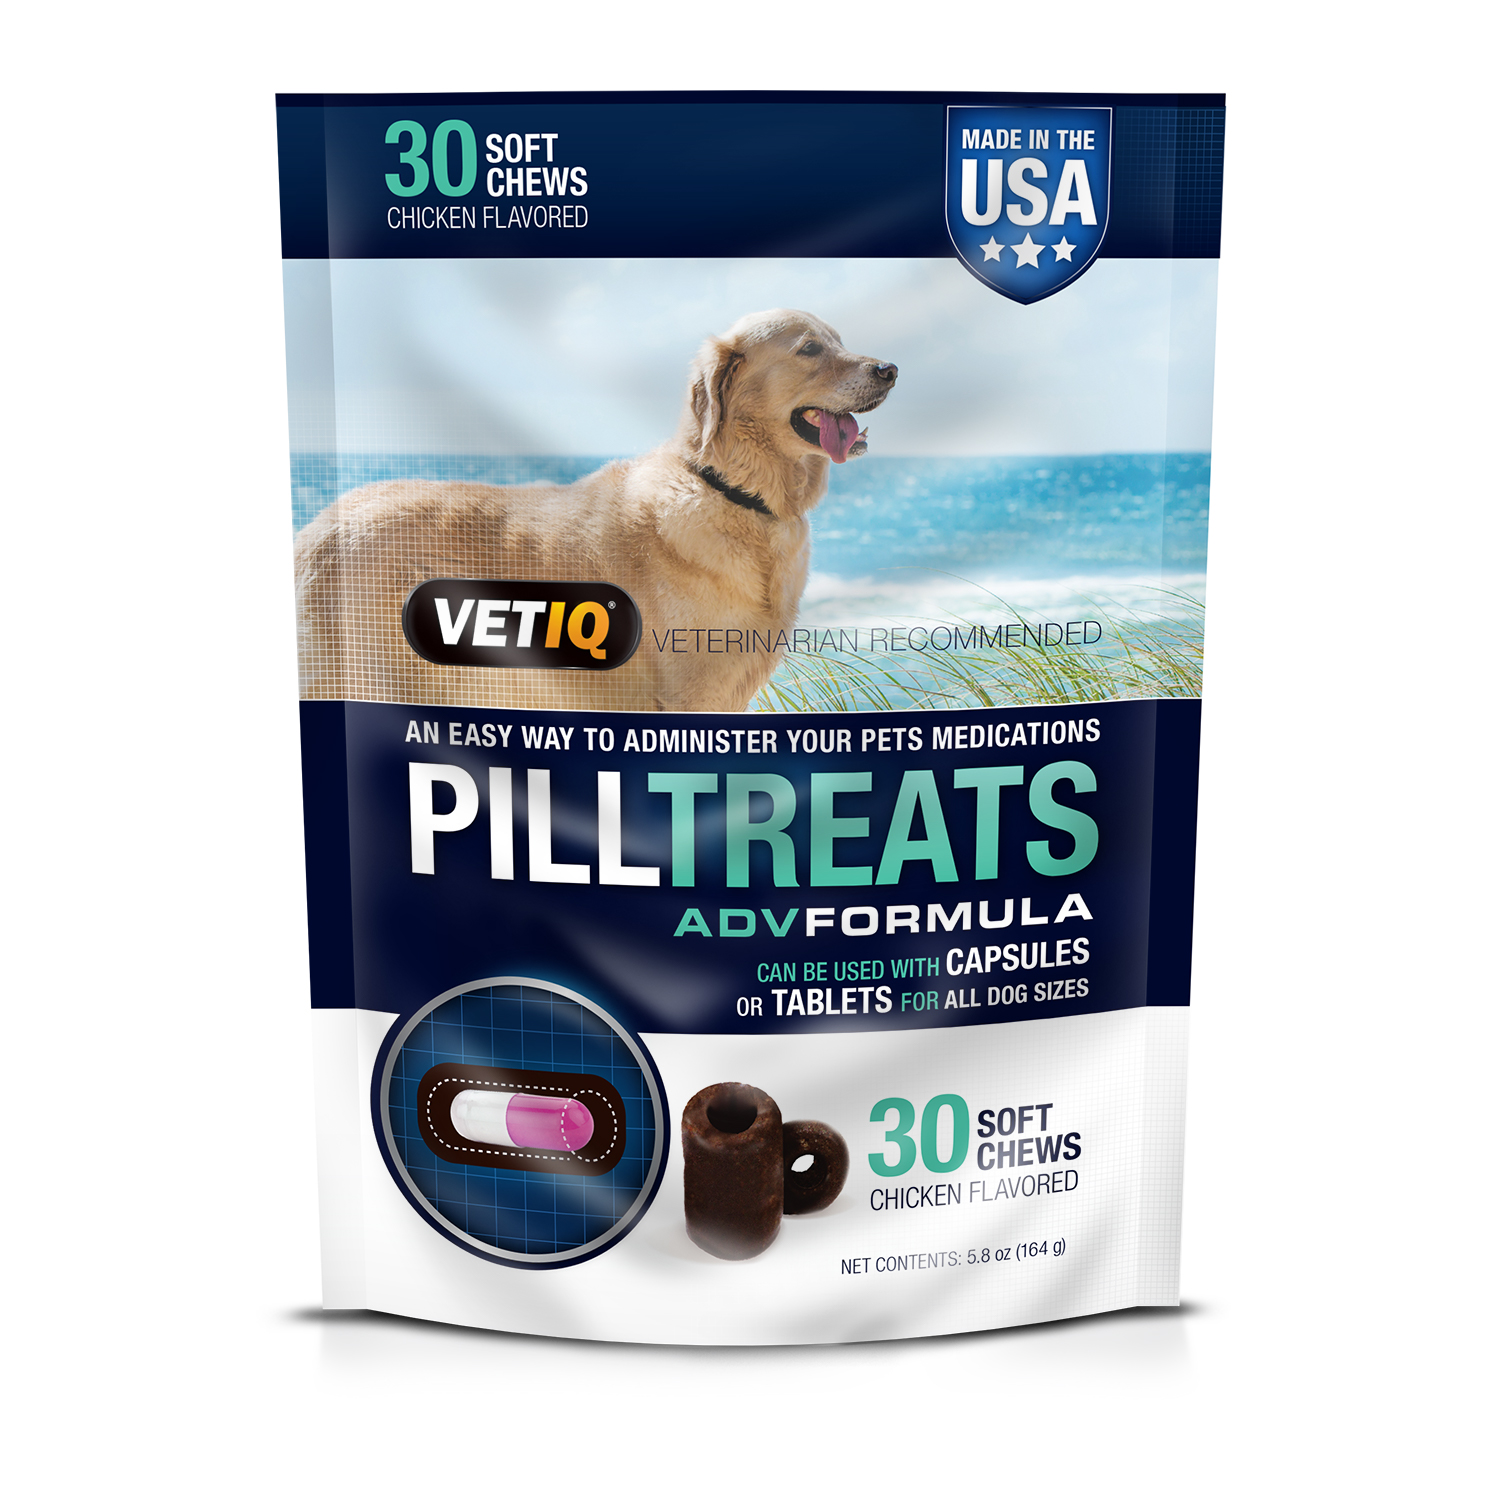 Vetiq Chicken Flavored Dog Pill Treats, 30 Ct.